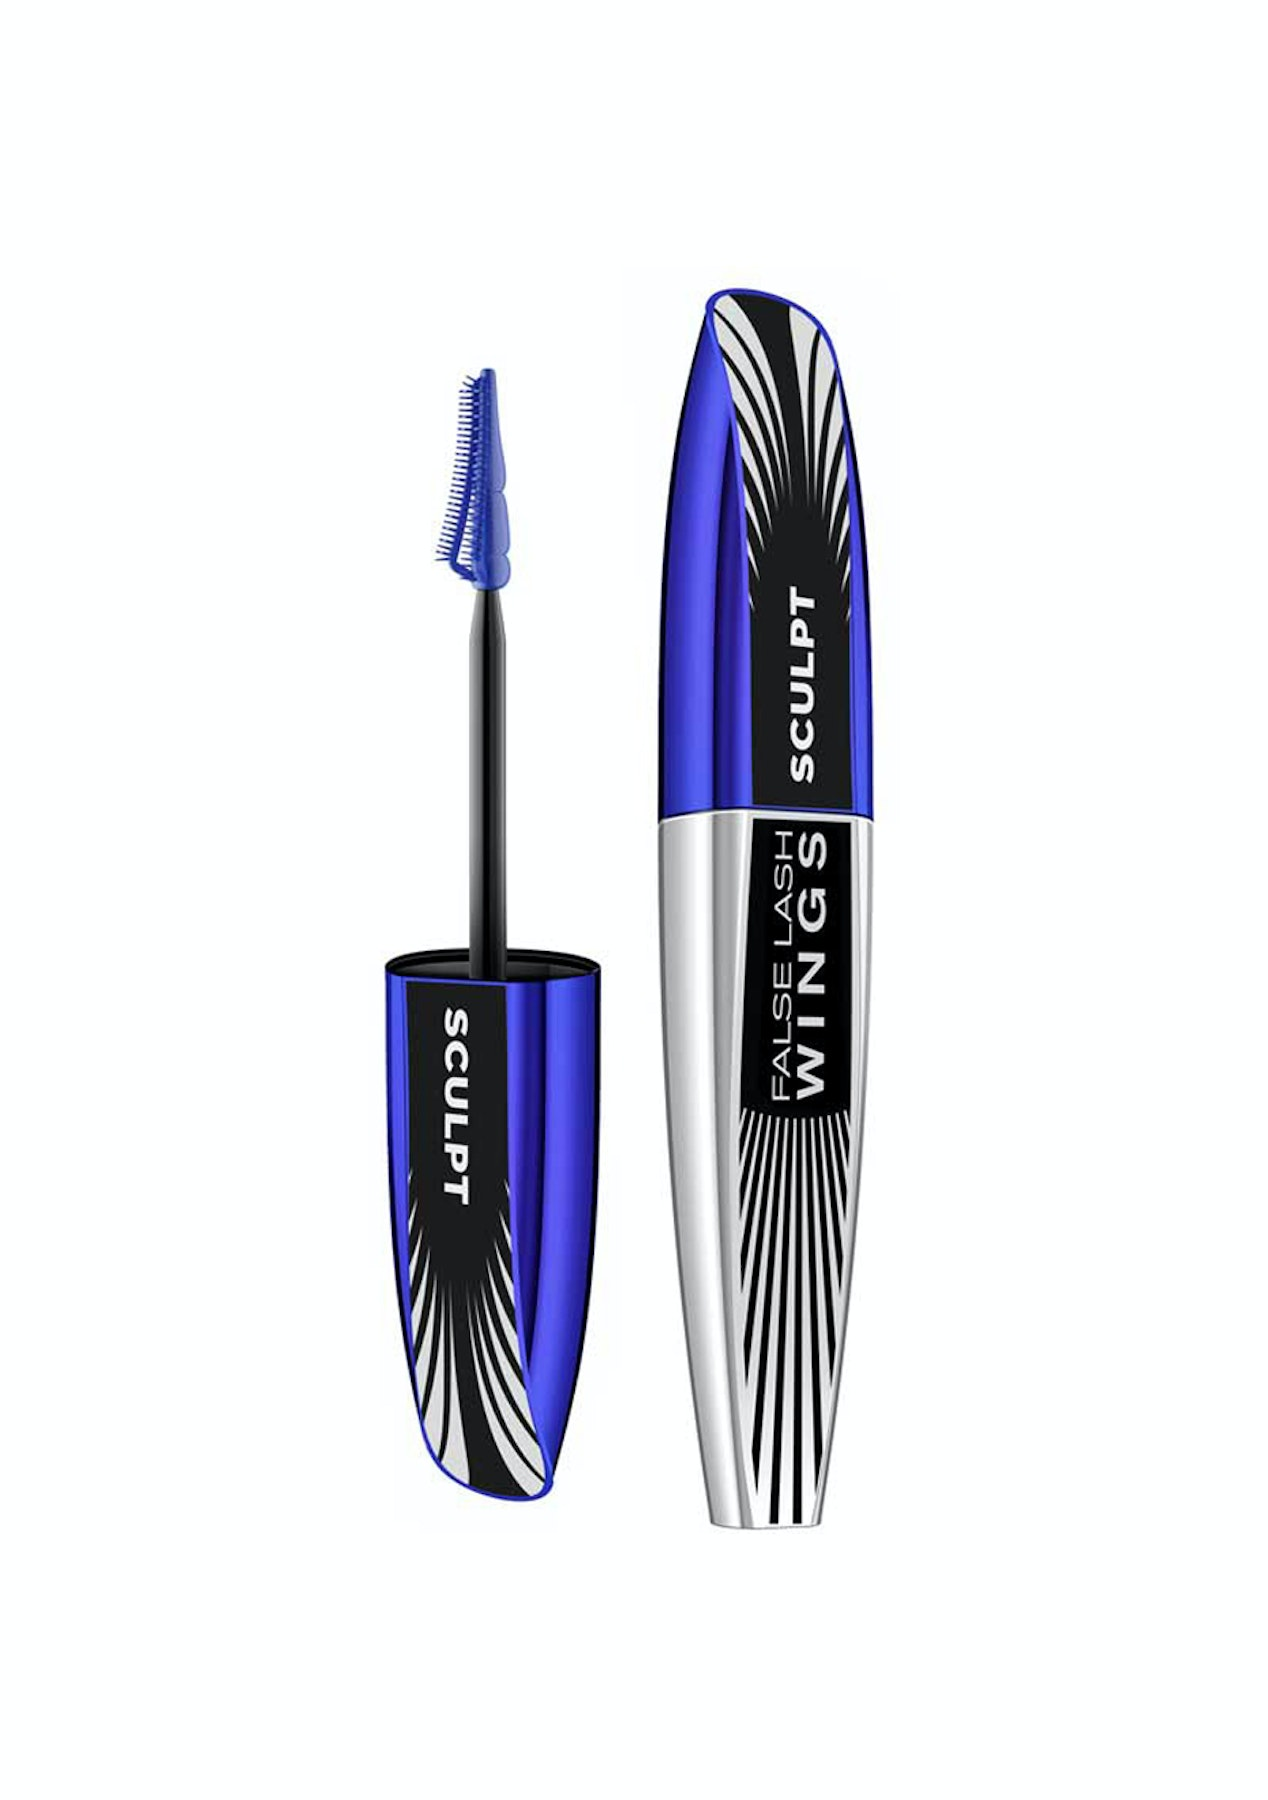 2406e001593 L'Oreal False Lash Butterfly Sculpt Mascara Black - The Great Lash Sale -  Onceit